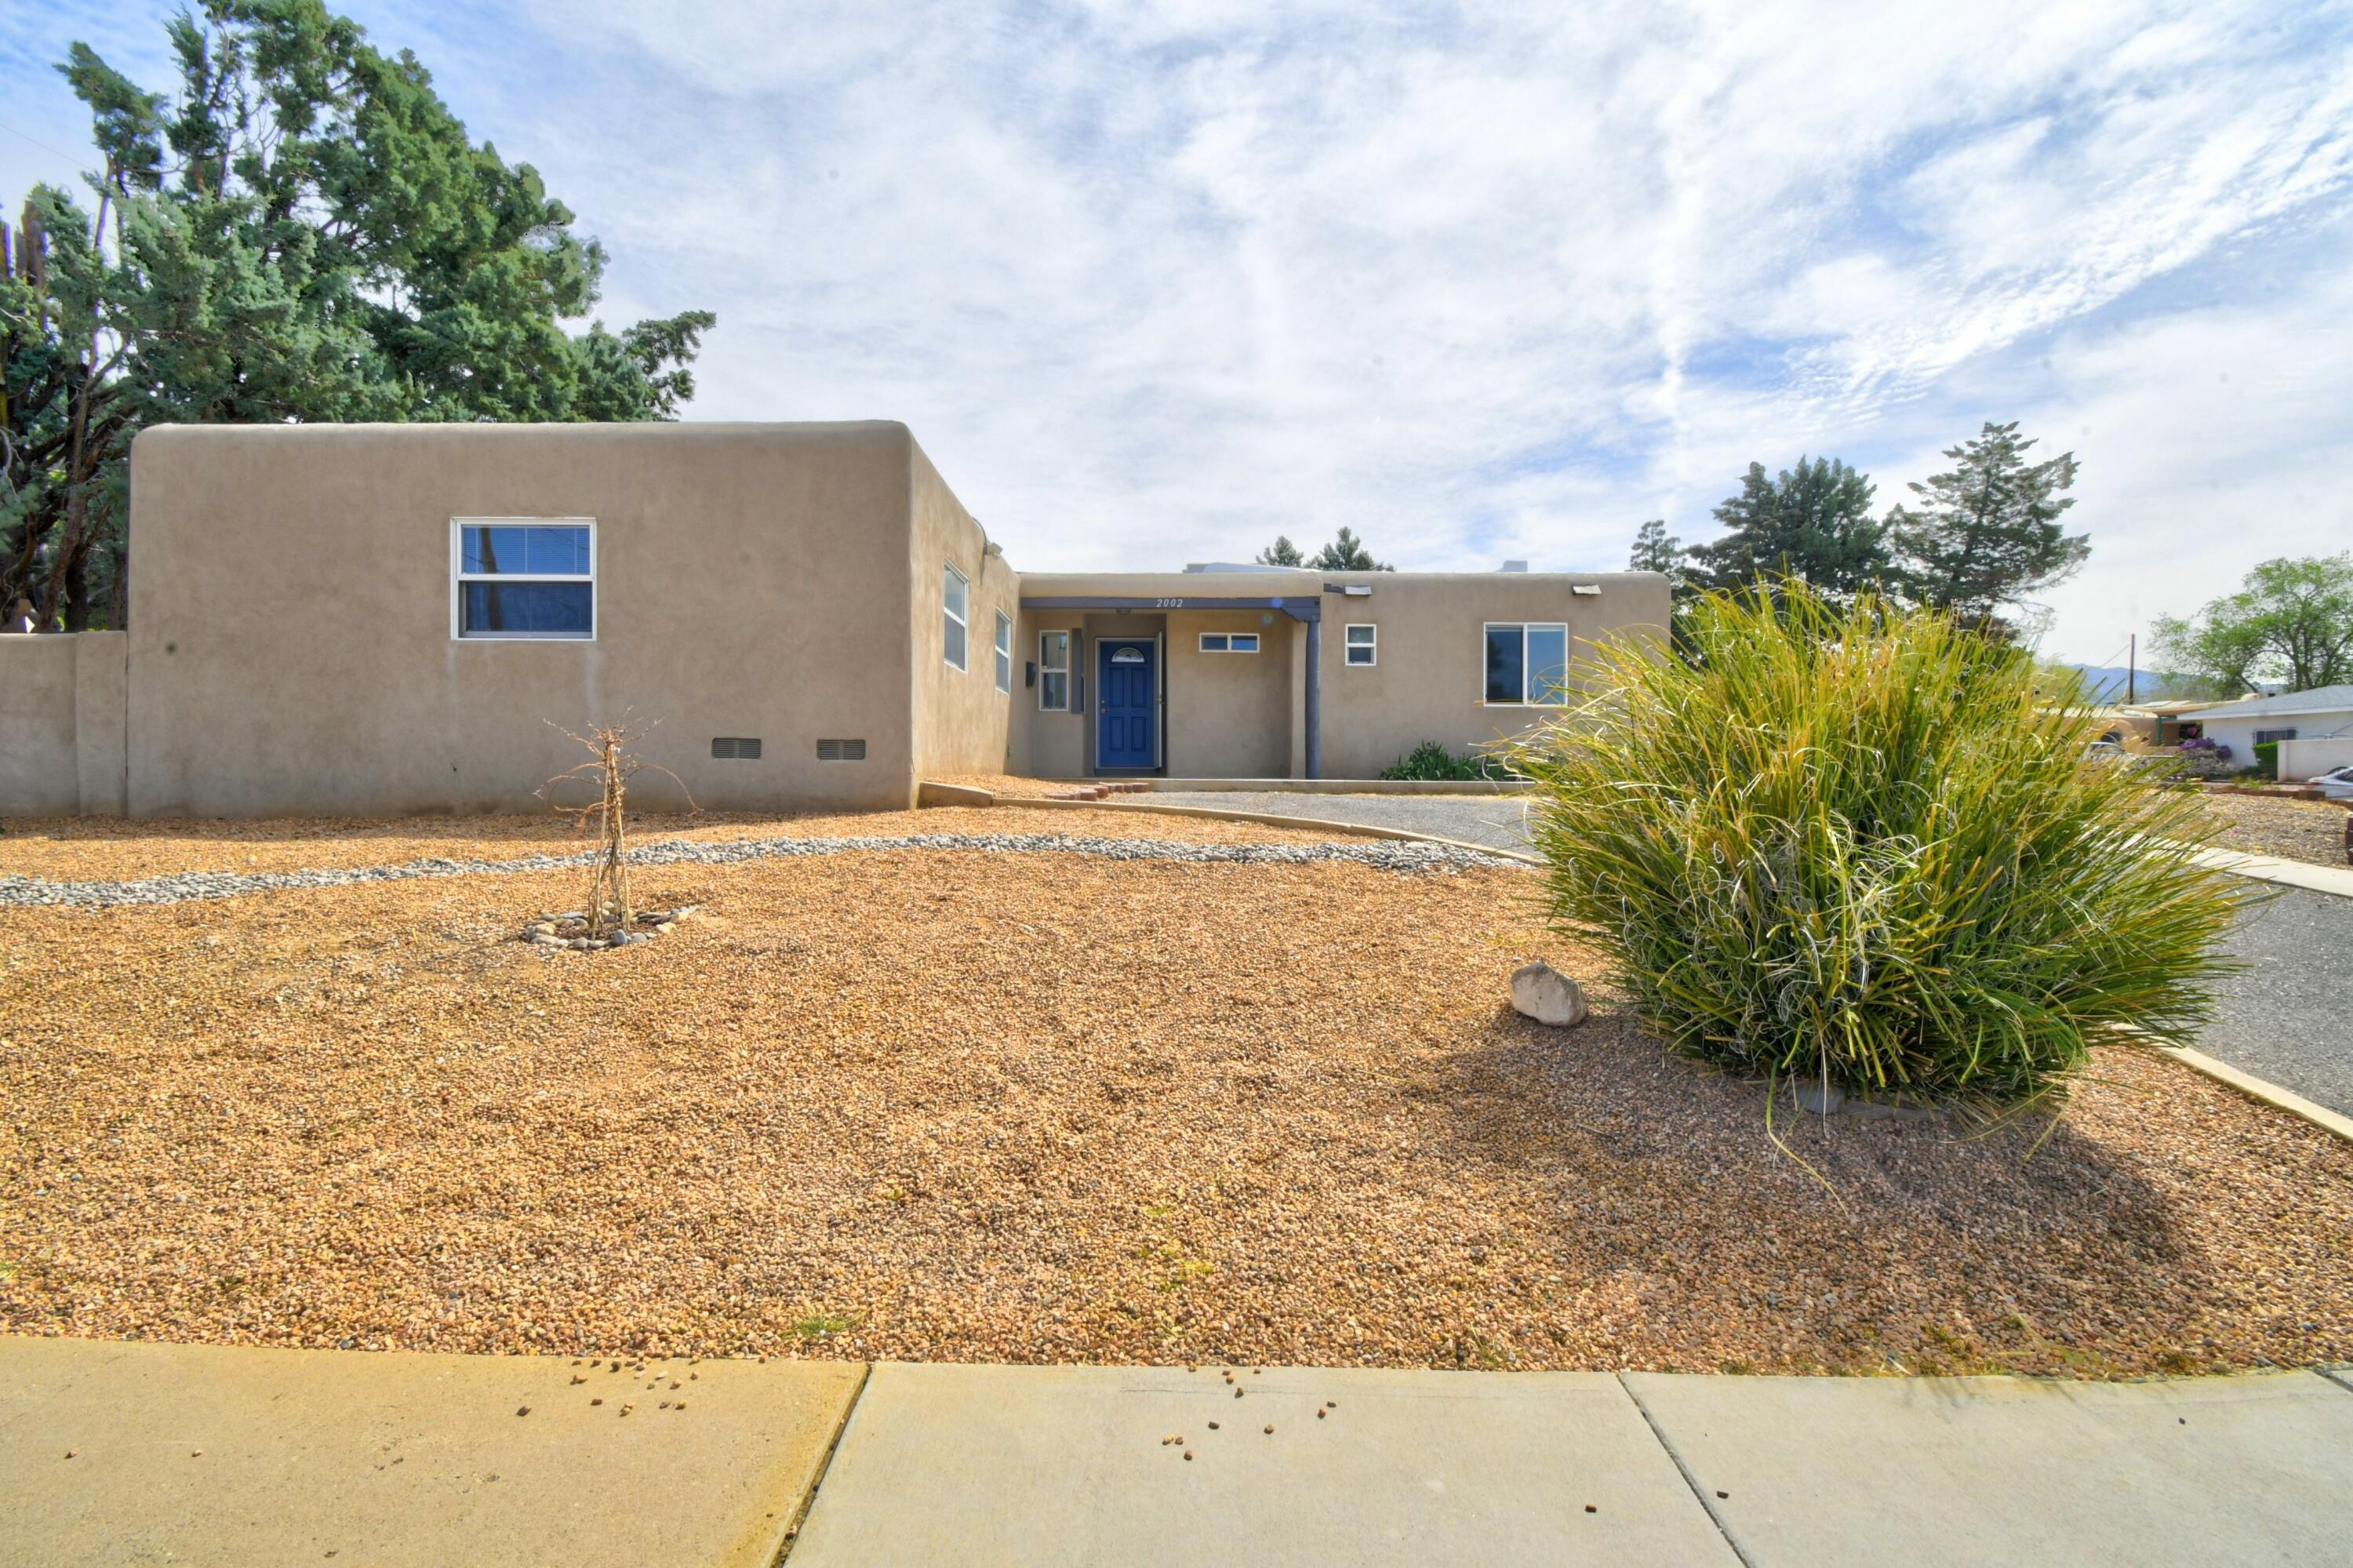 Beautifully updated 3 bed/2bath home on a corner lot in the NE heights. This home was first updated in 2015 with new flooring, windows, bathrooms, paint, stucco, doors, ceiling fans, kitchen cabinets, countertops, sink, appliances and a heat/cool combo unit. In 2021 a new roof was installed along with new flooring. You will say wow!